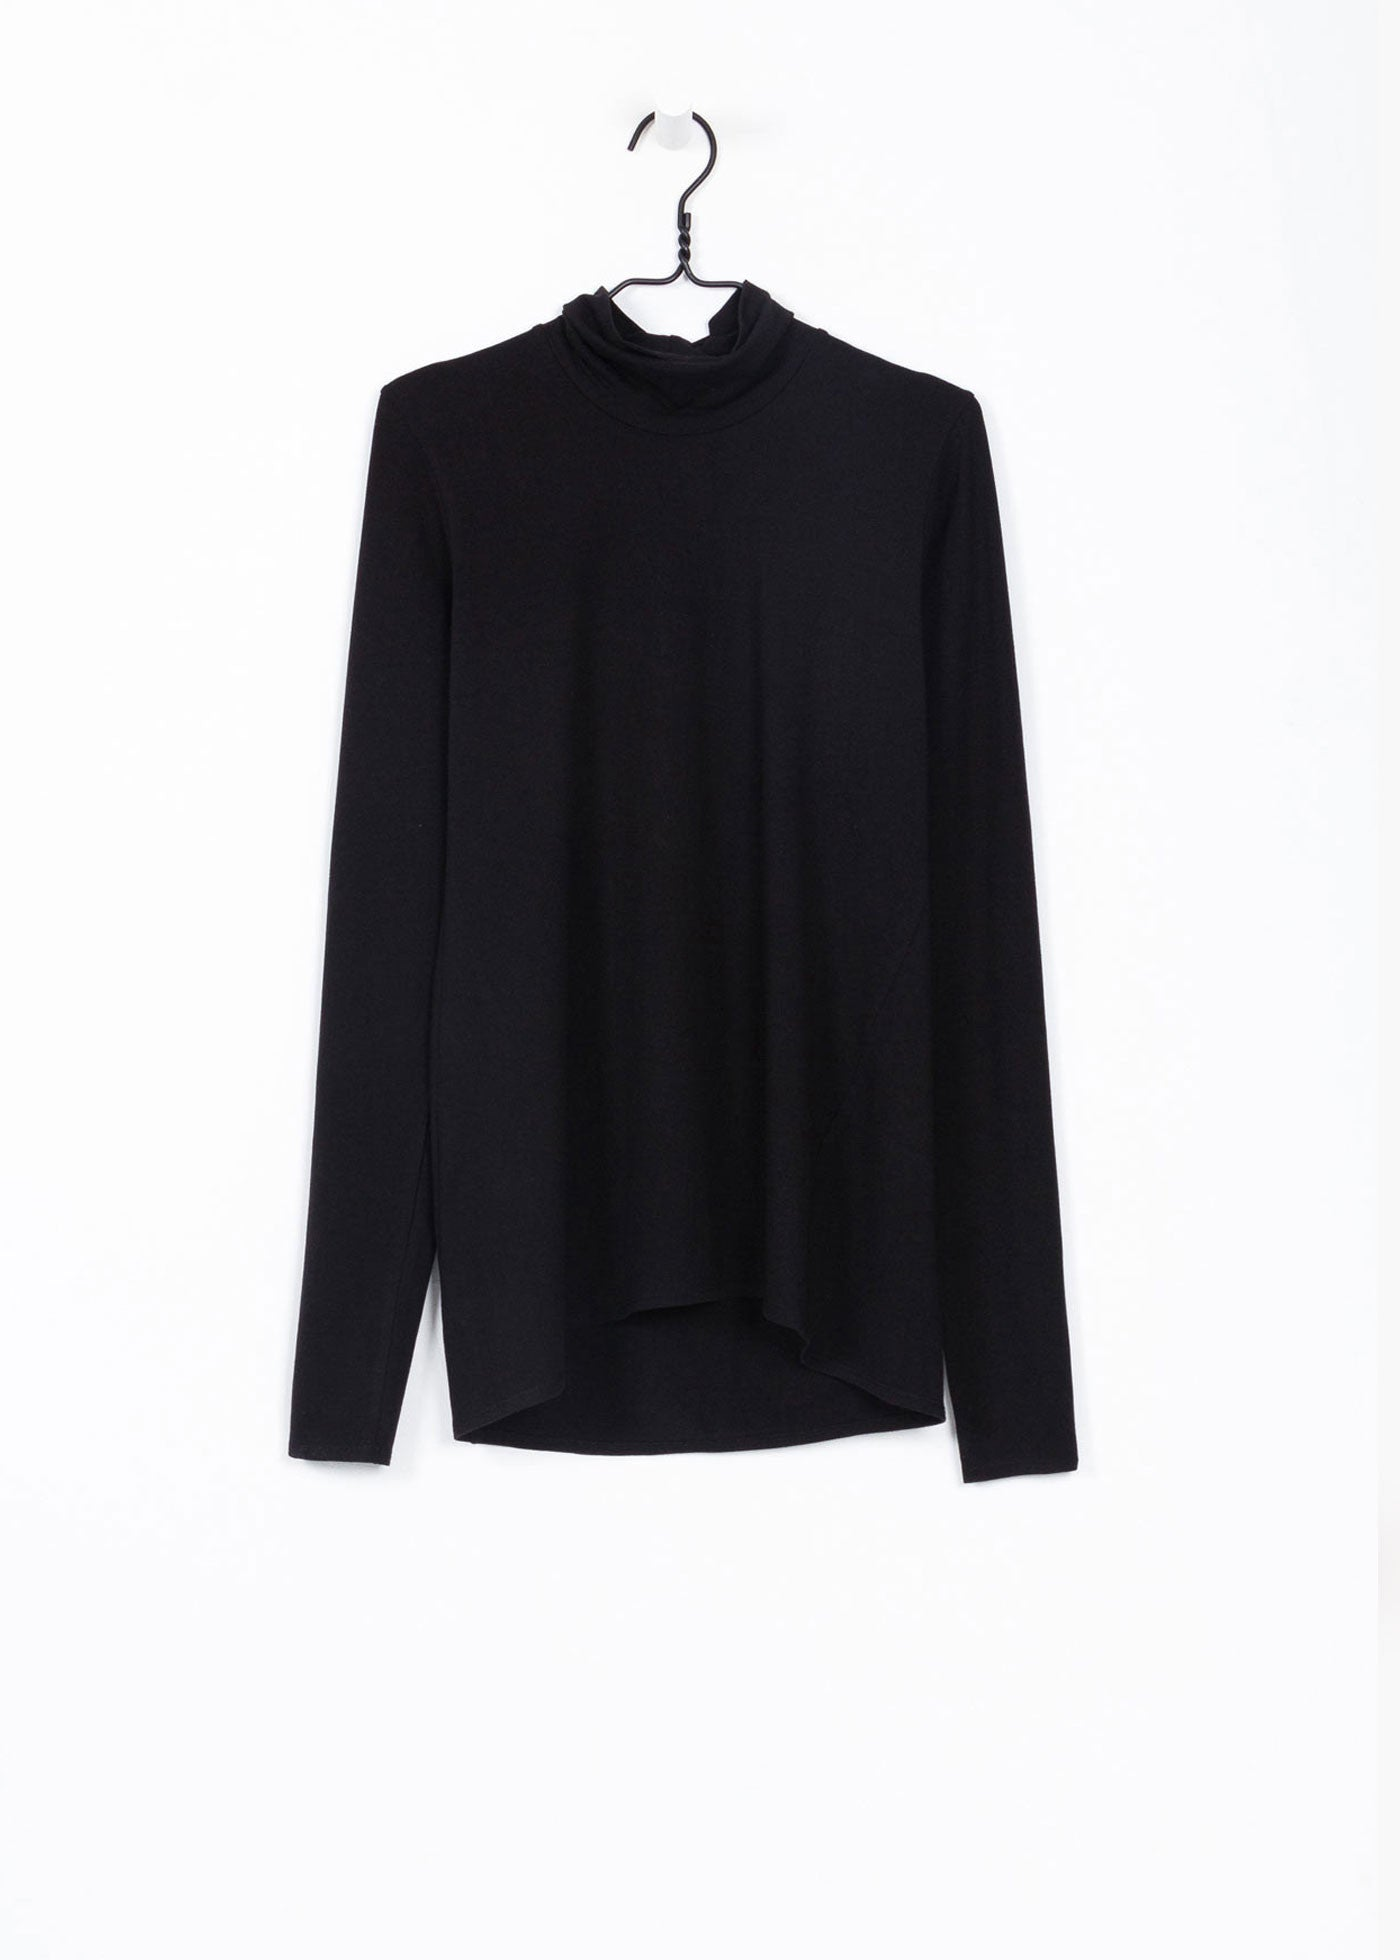 Kowtow Black Turtle Neck Top - New Classics Studios